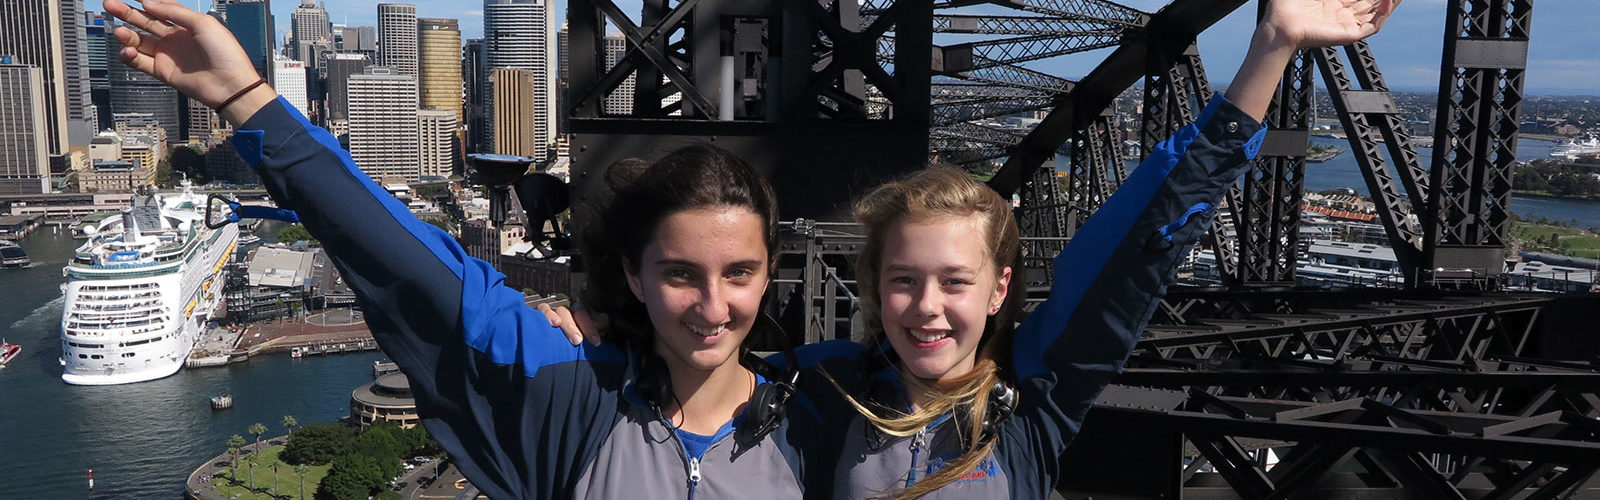 Leilani Mauricio, left, and Anouck Heyse climbed the Sydney Harbour Bridge for Crinkling News. Photo: Bridge Climb